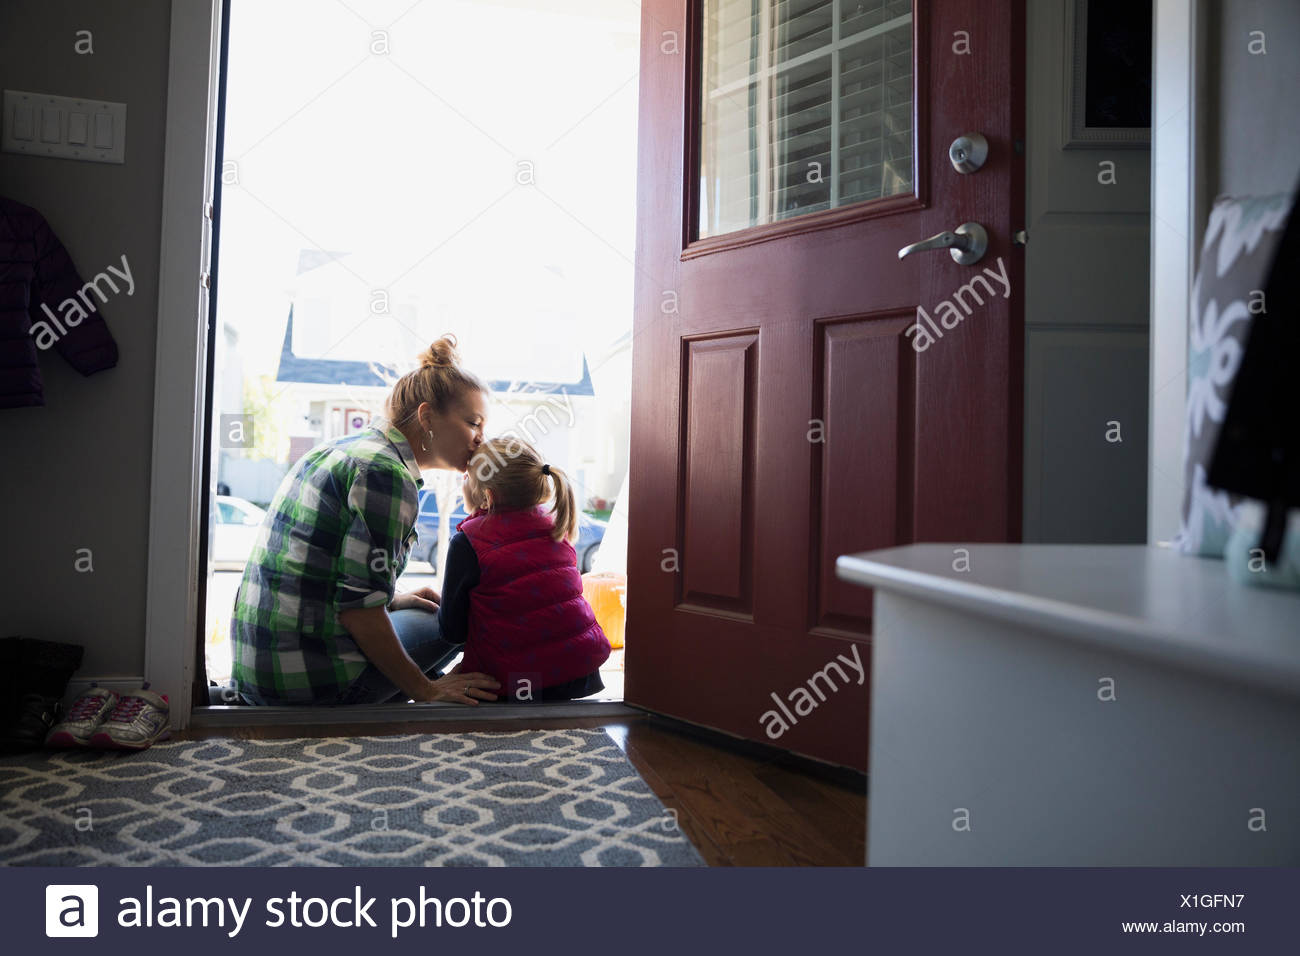 Mother kissing daughter forehead in doorway - Stock Image